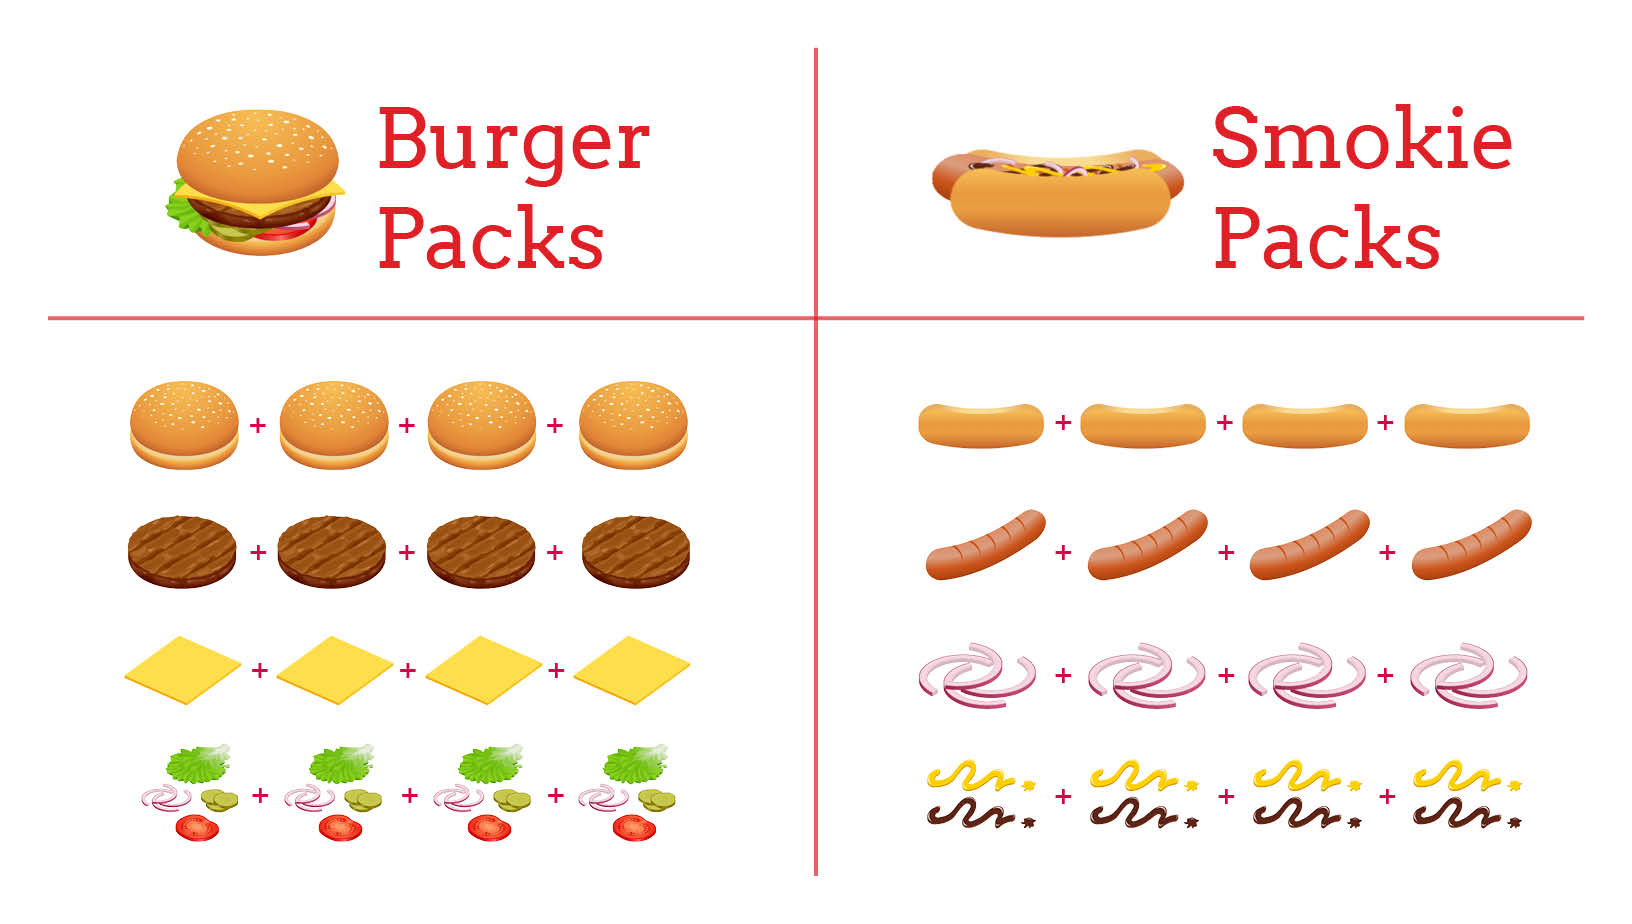 Burger and Smokie Packs